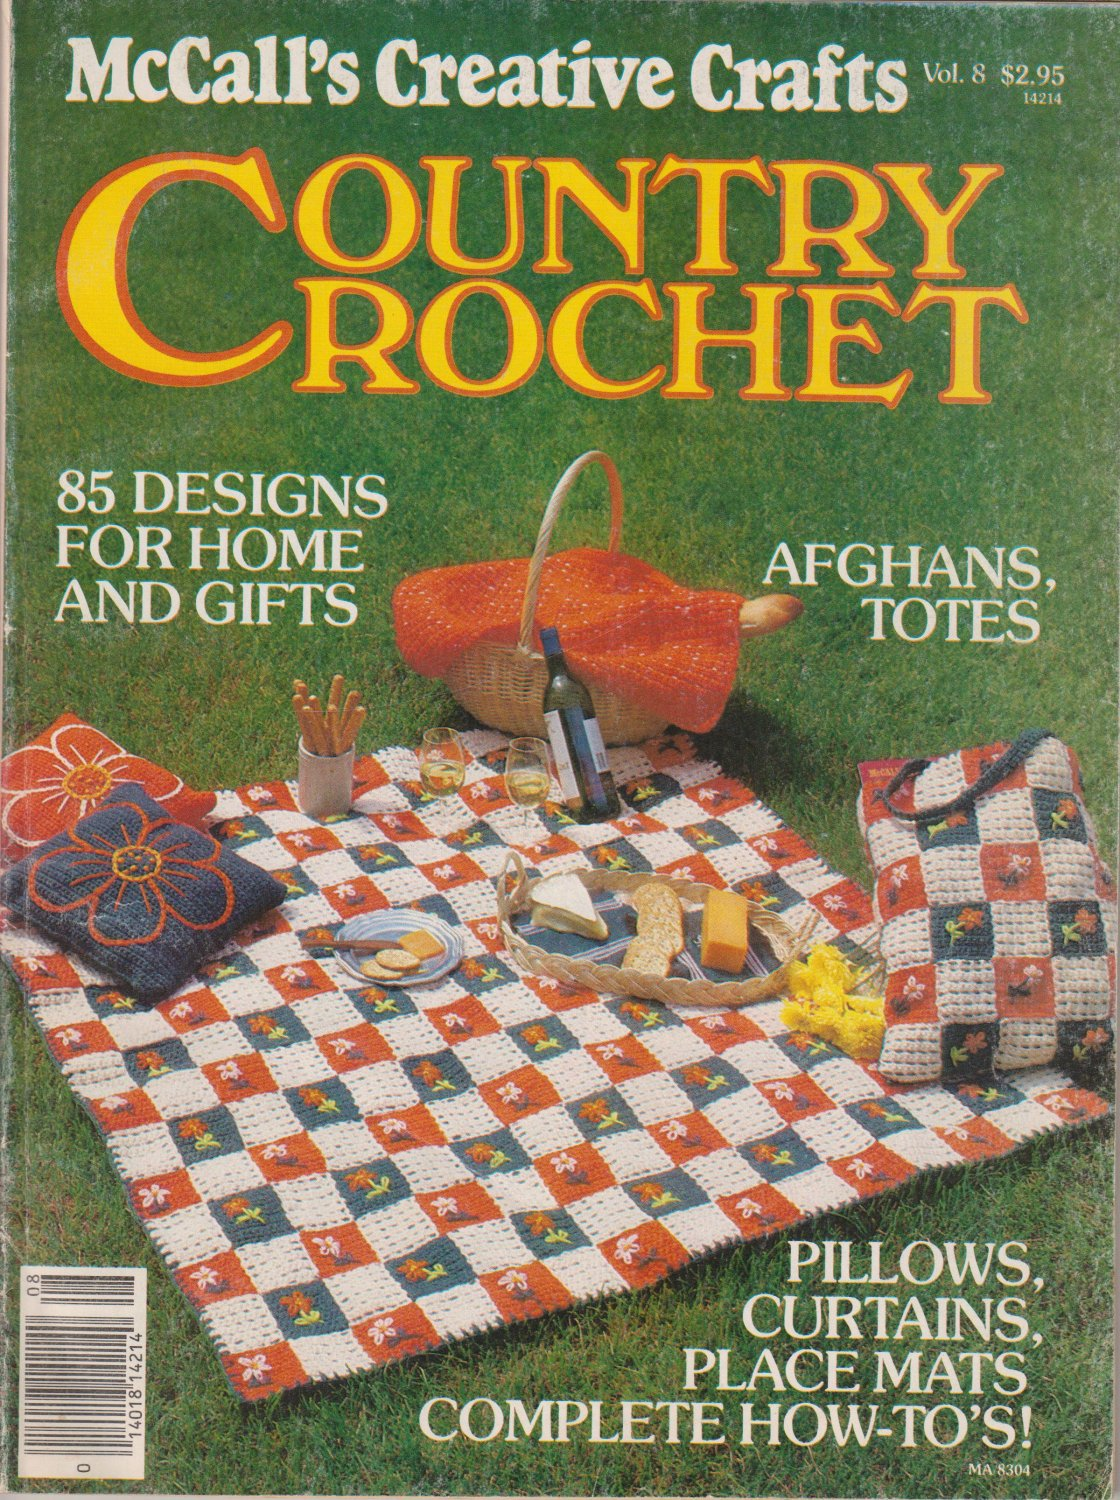 McCall's Creative Crafts Country Crochet 1983 Magazine Vol.8